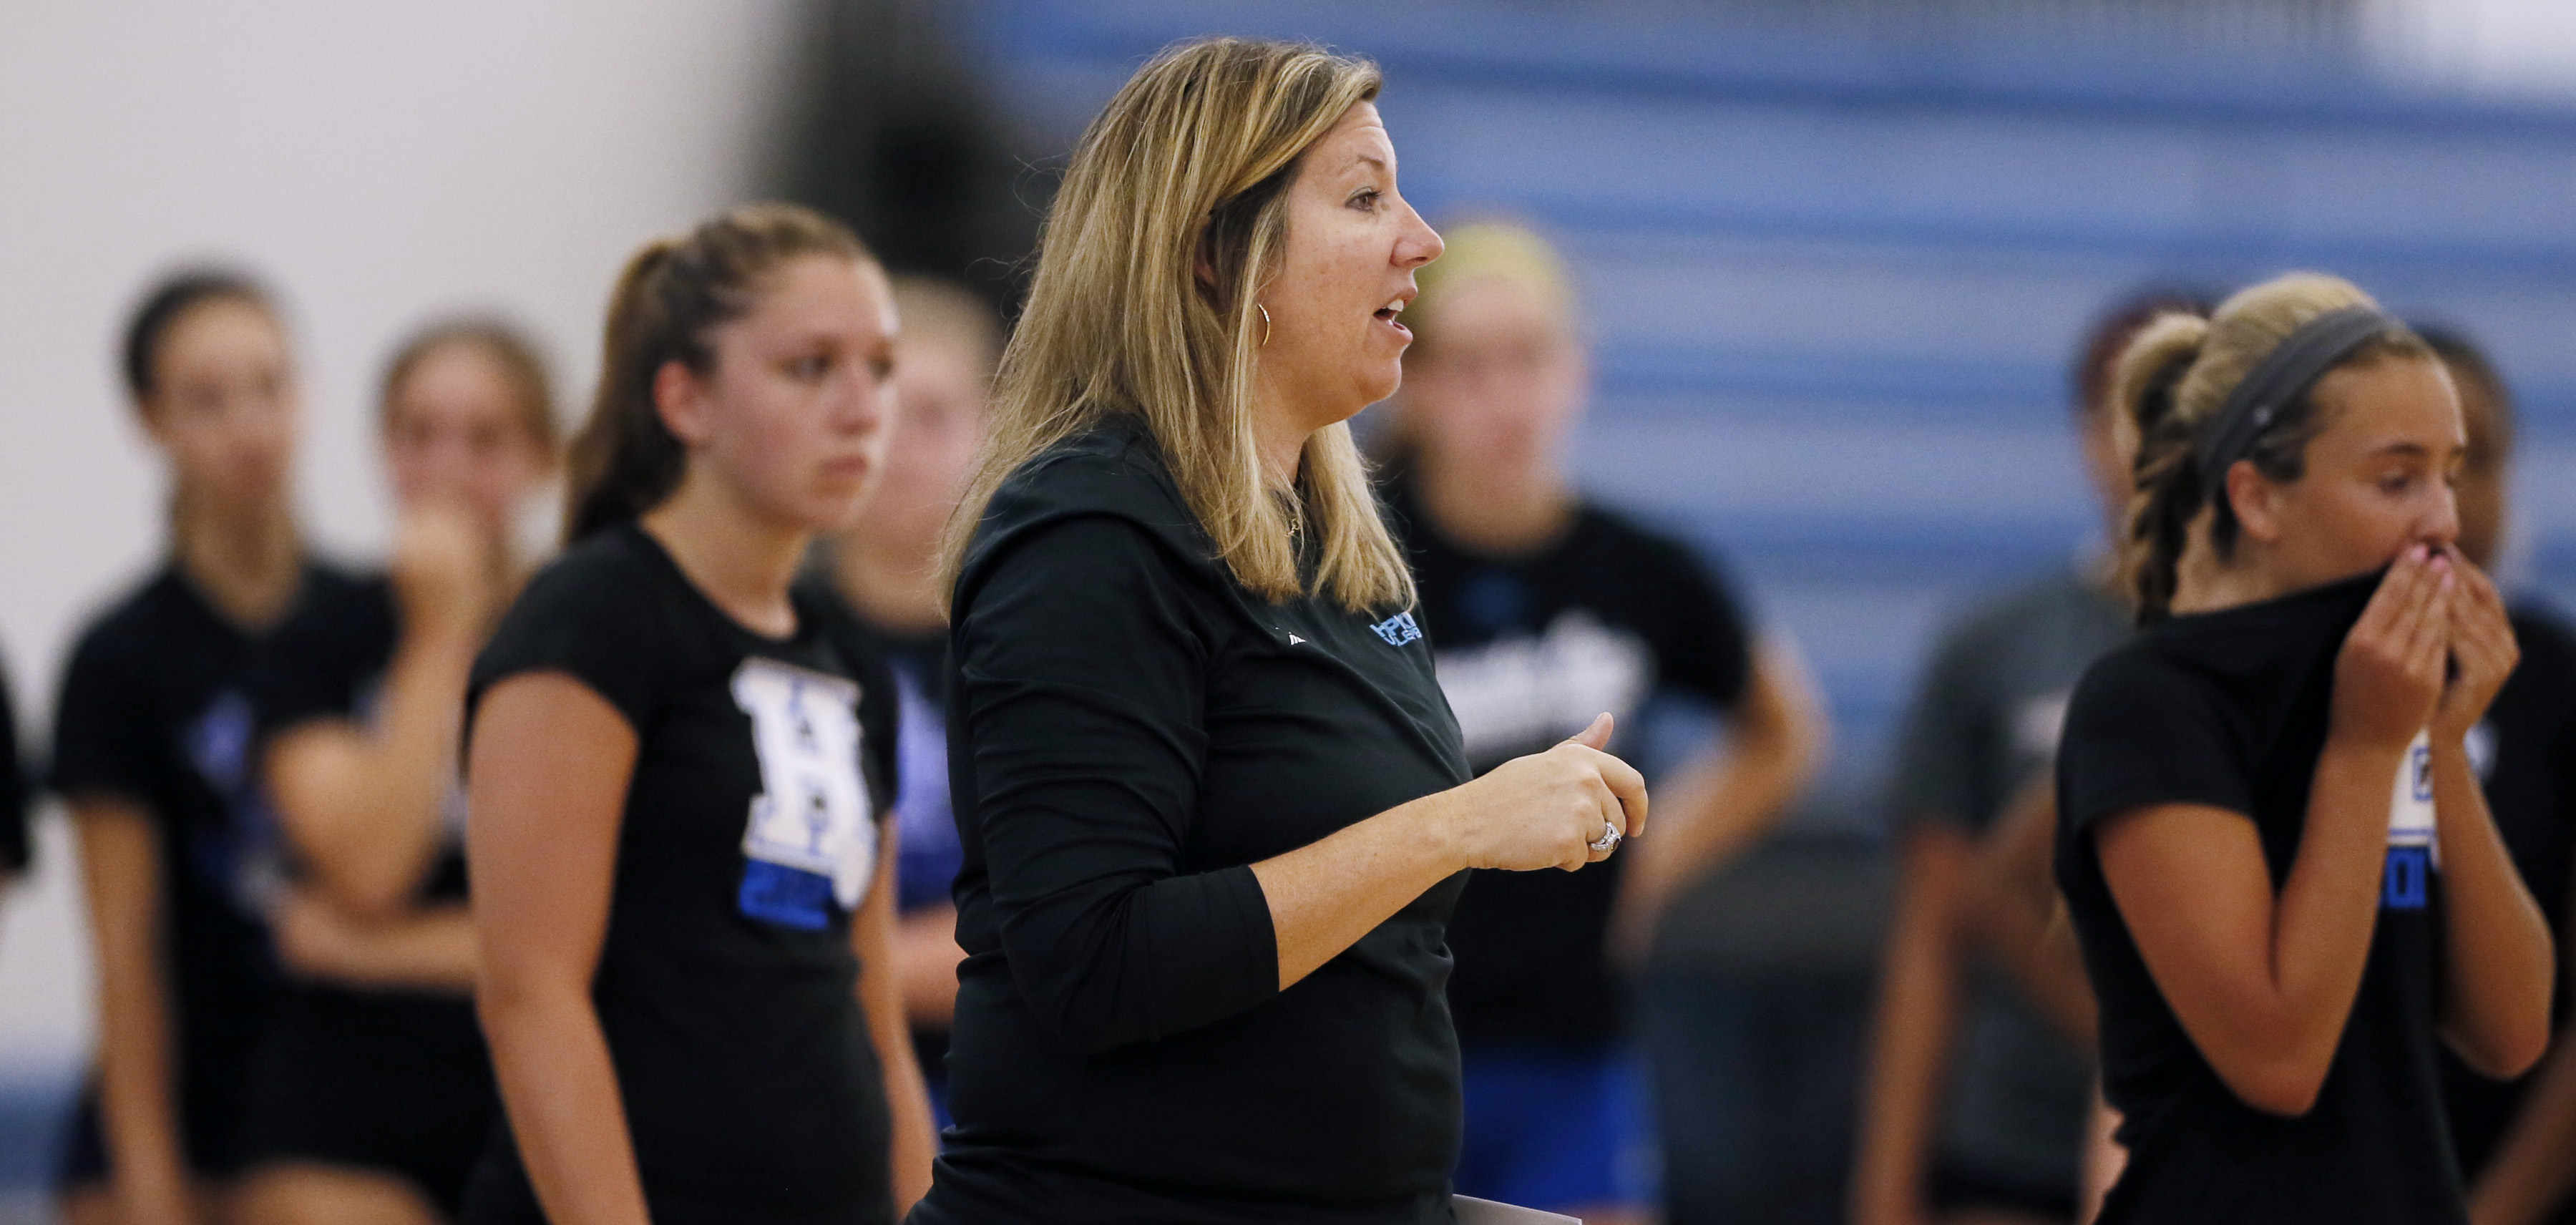 Hopkins volleyball coach Vicki Swenson gives instructions during the Royals' first day of practice last year. Star Tribune file photo by Jerry Holt